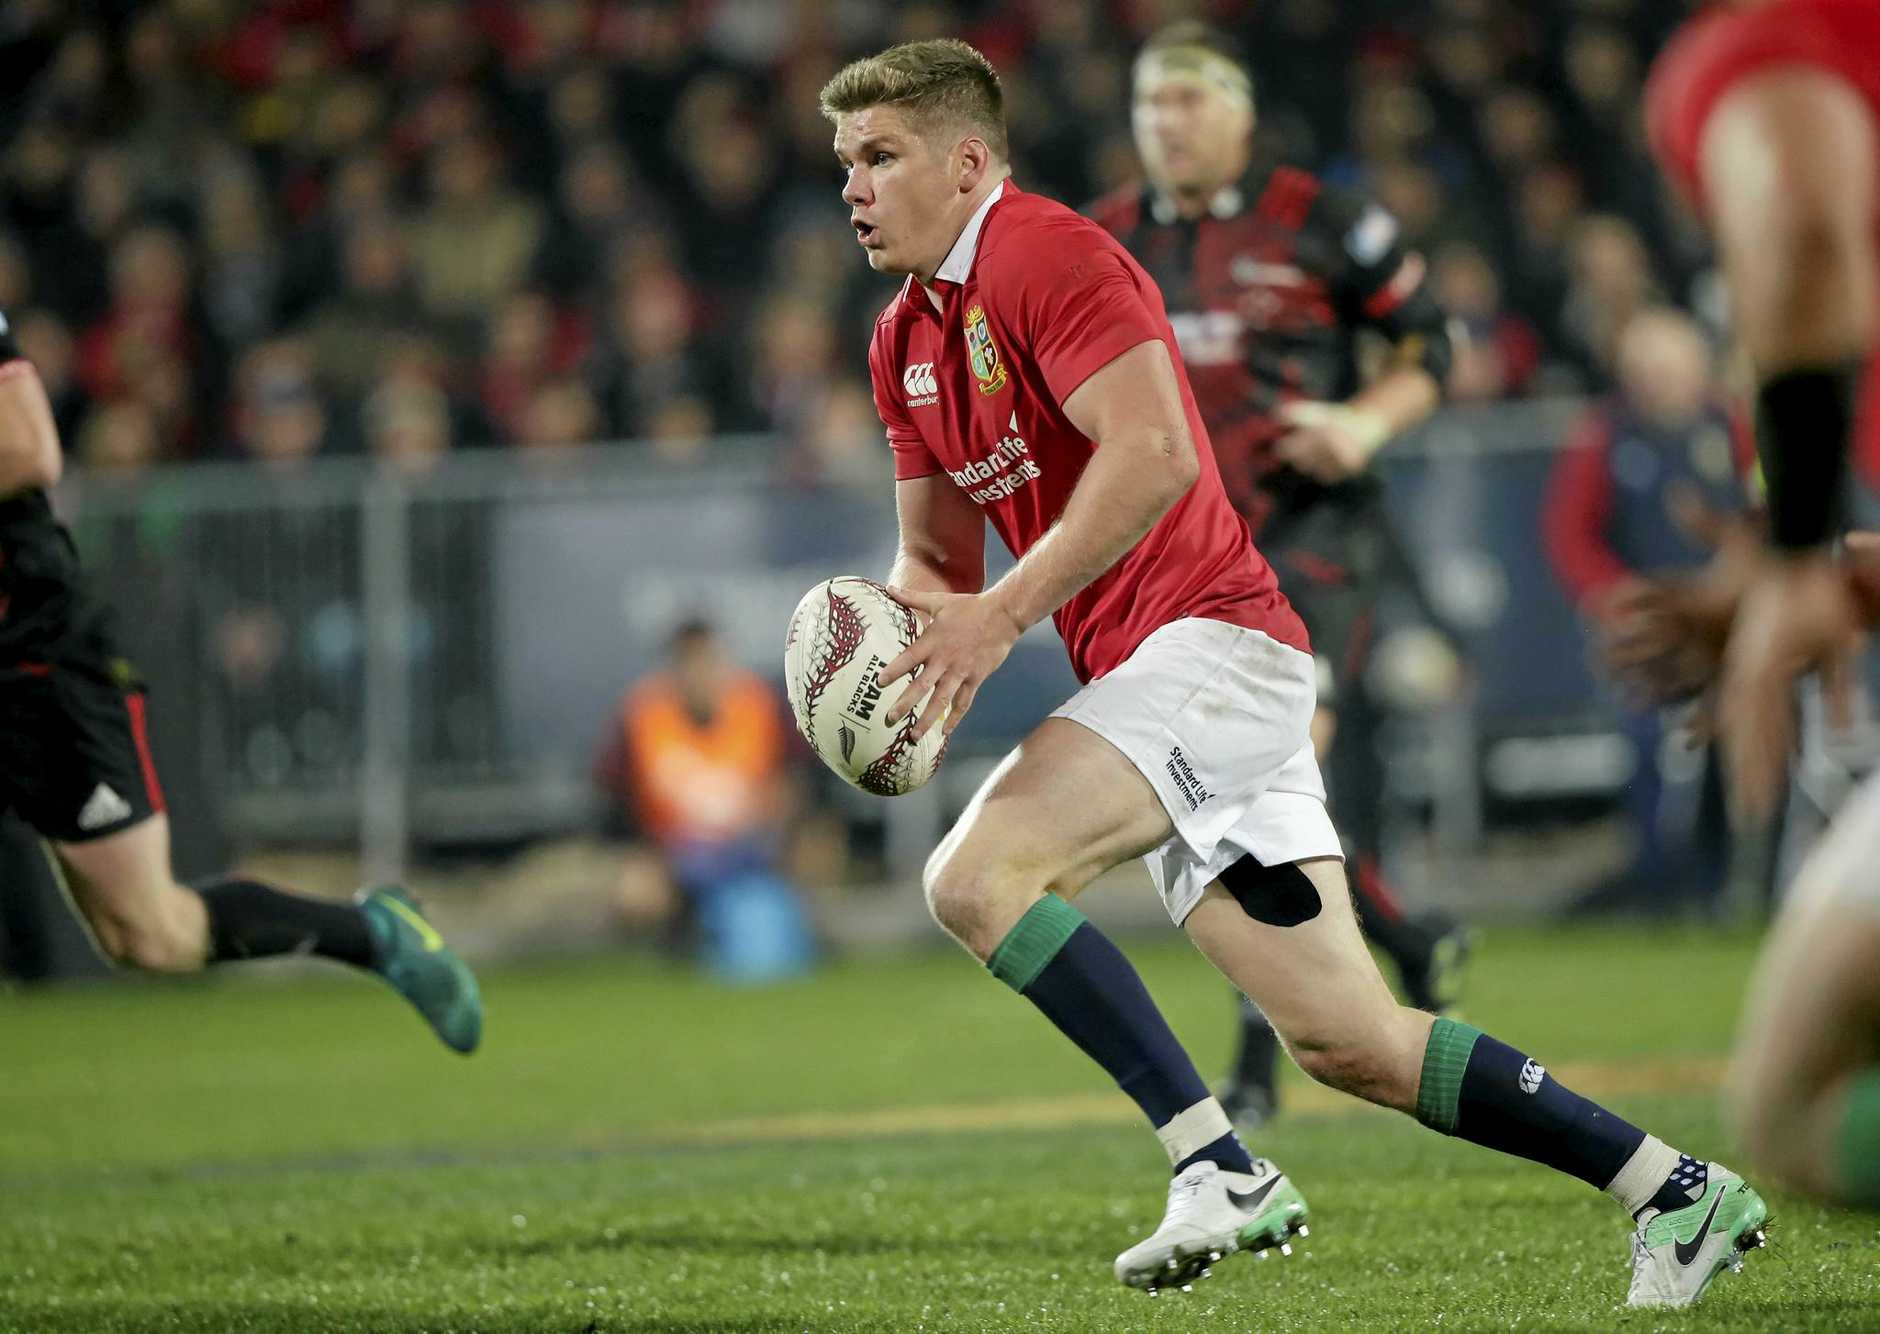 British and Irish Lions flyhalf Owen Farrell runs with the ball during their match against the Canterbury Crusaders in Christchurch, New Zealand, Saturday, June 10, 2017. (AP Photo/Mark Baker)